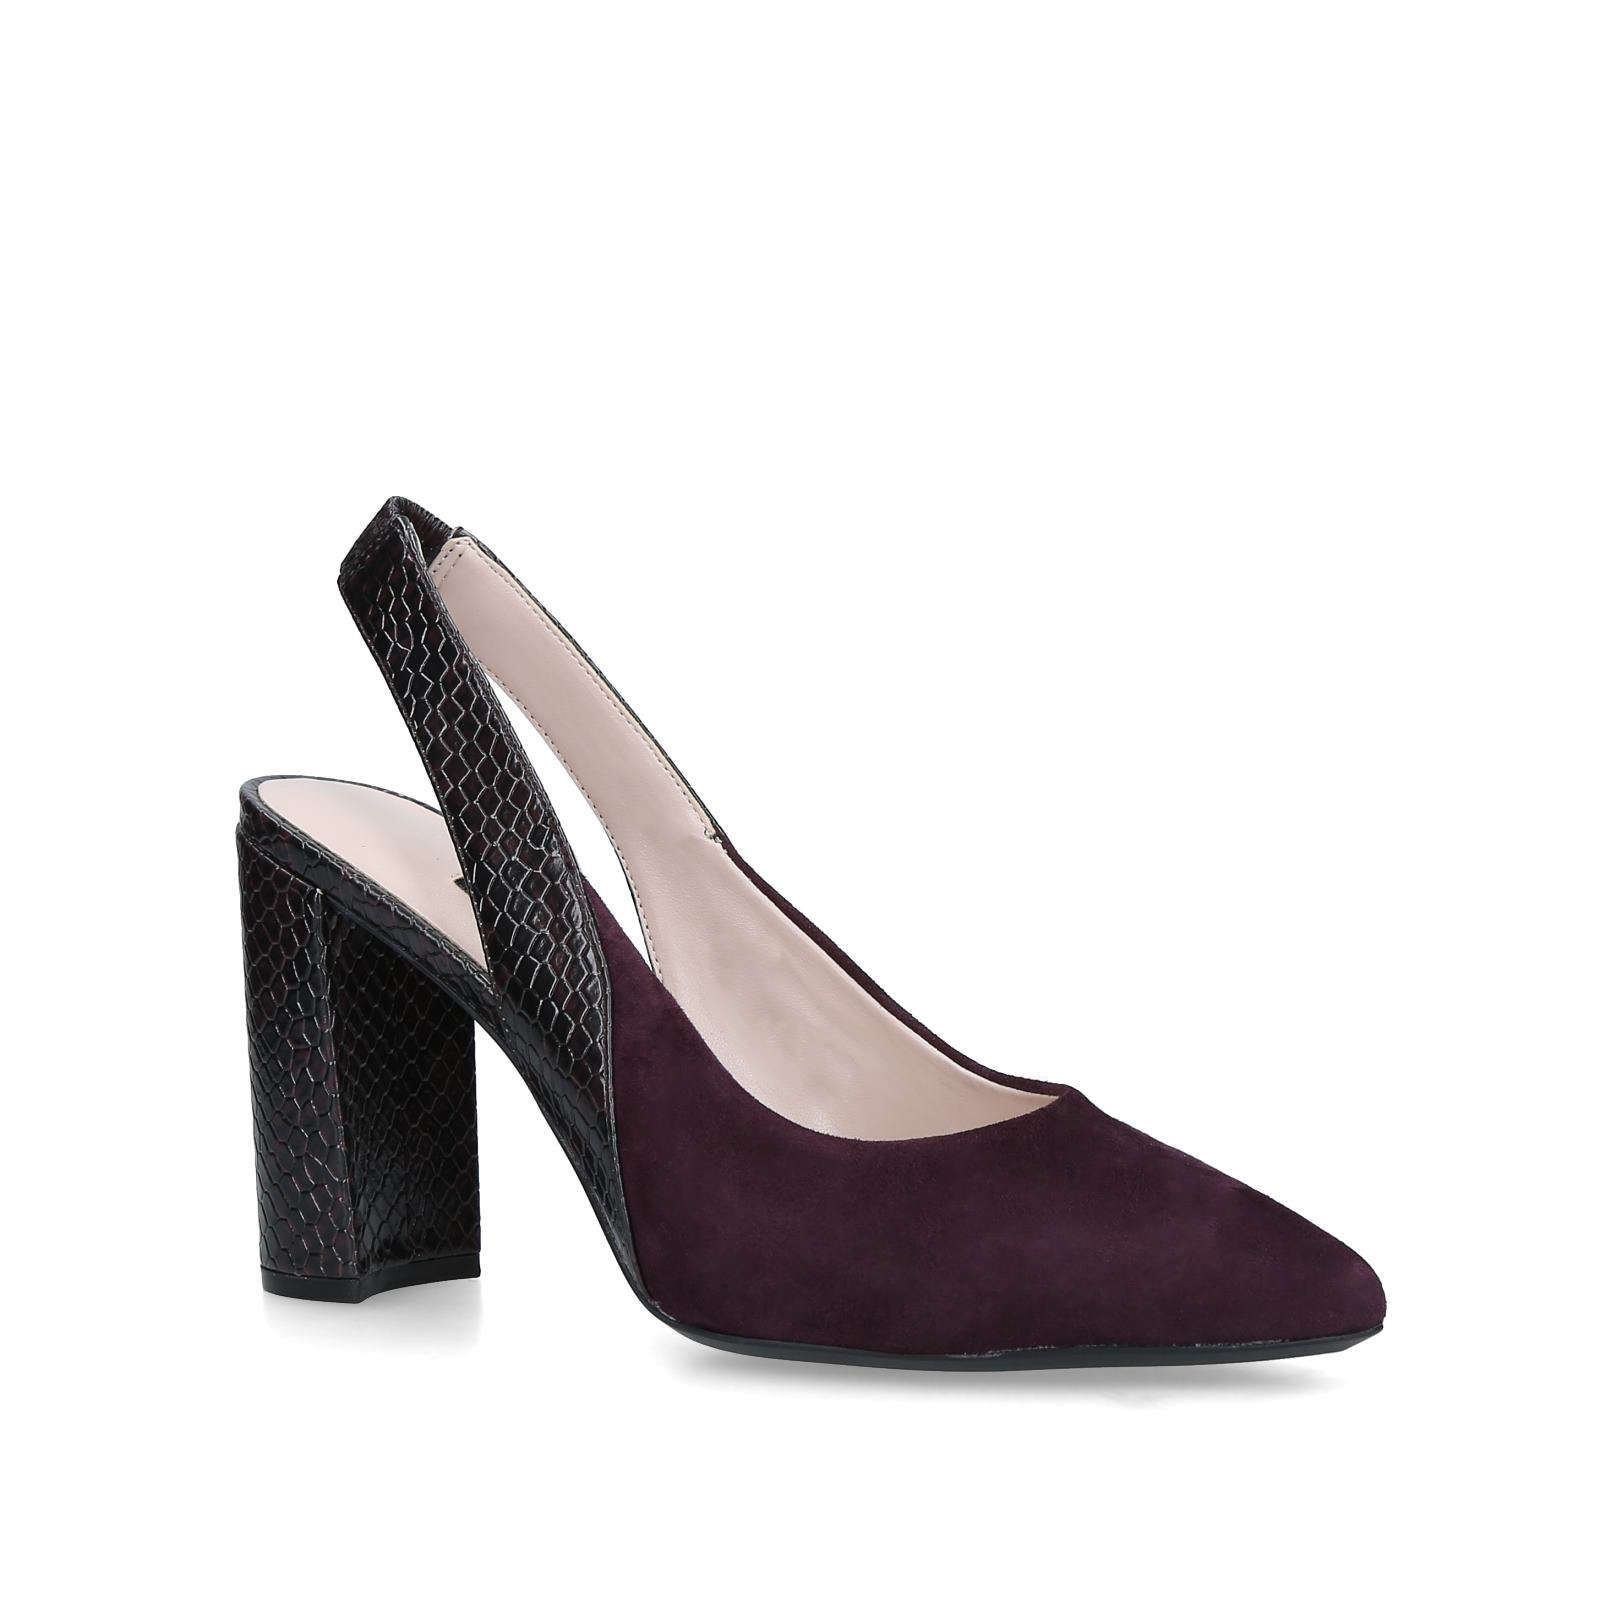 3d3fe2bbbb60 Shop ARERICK Wine Suede Slingback Court Shoes by NINE WEST at official Kurt  Geiger Site.